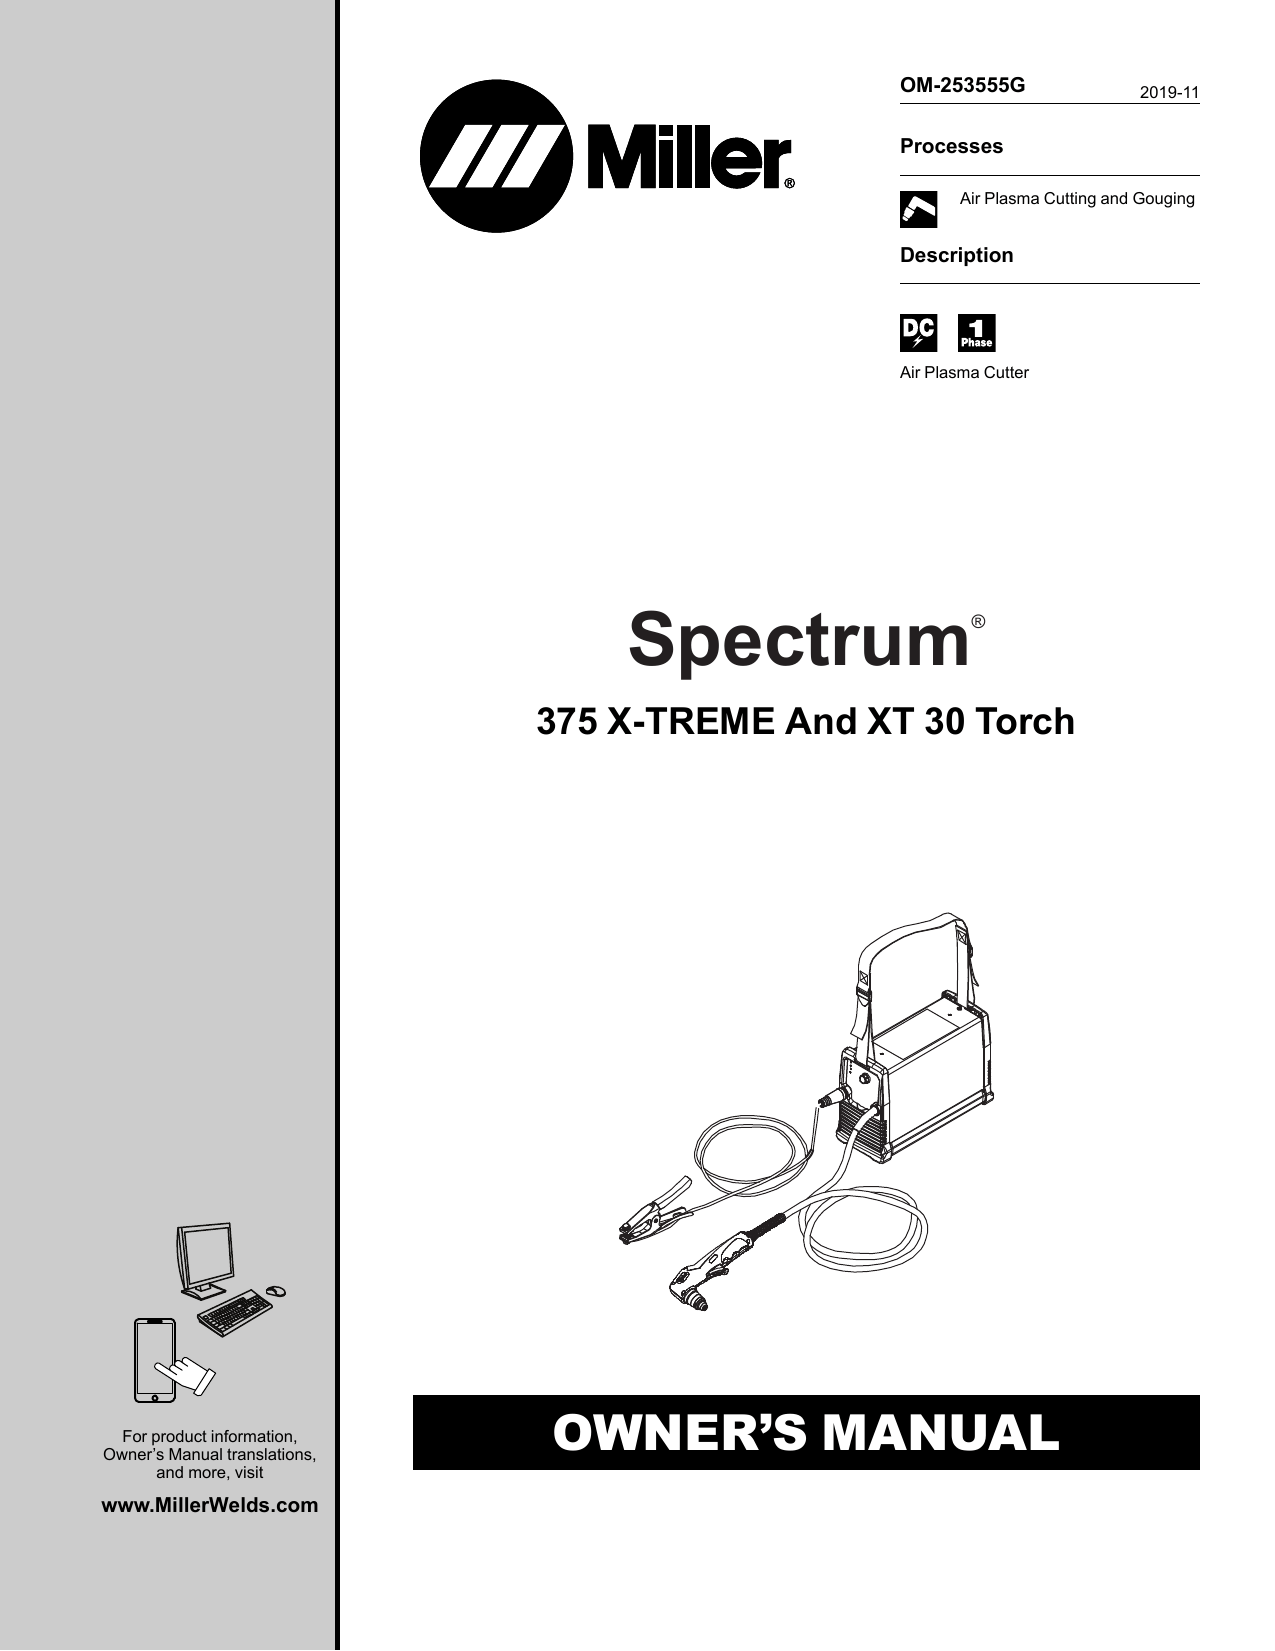 Miller SPECTRUM 375 X-TREME AND XT30 TORCH Owner Manual